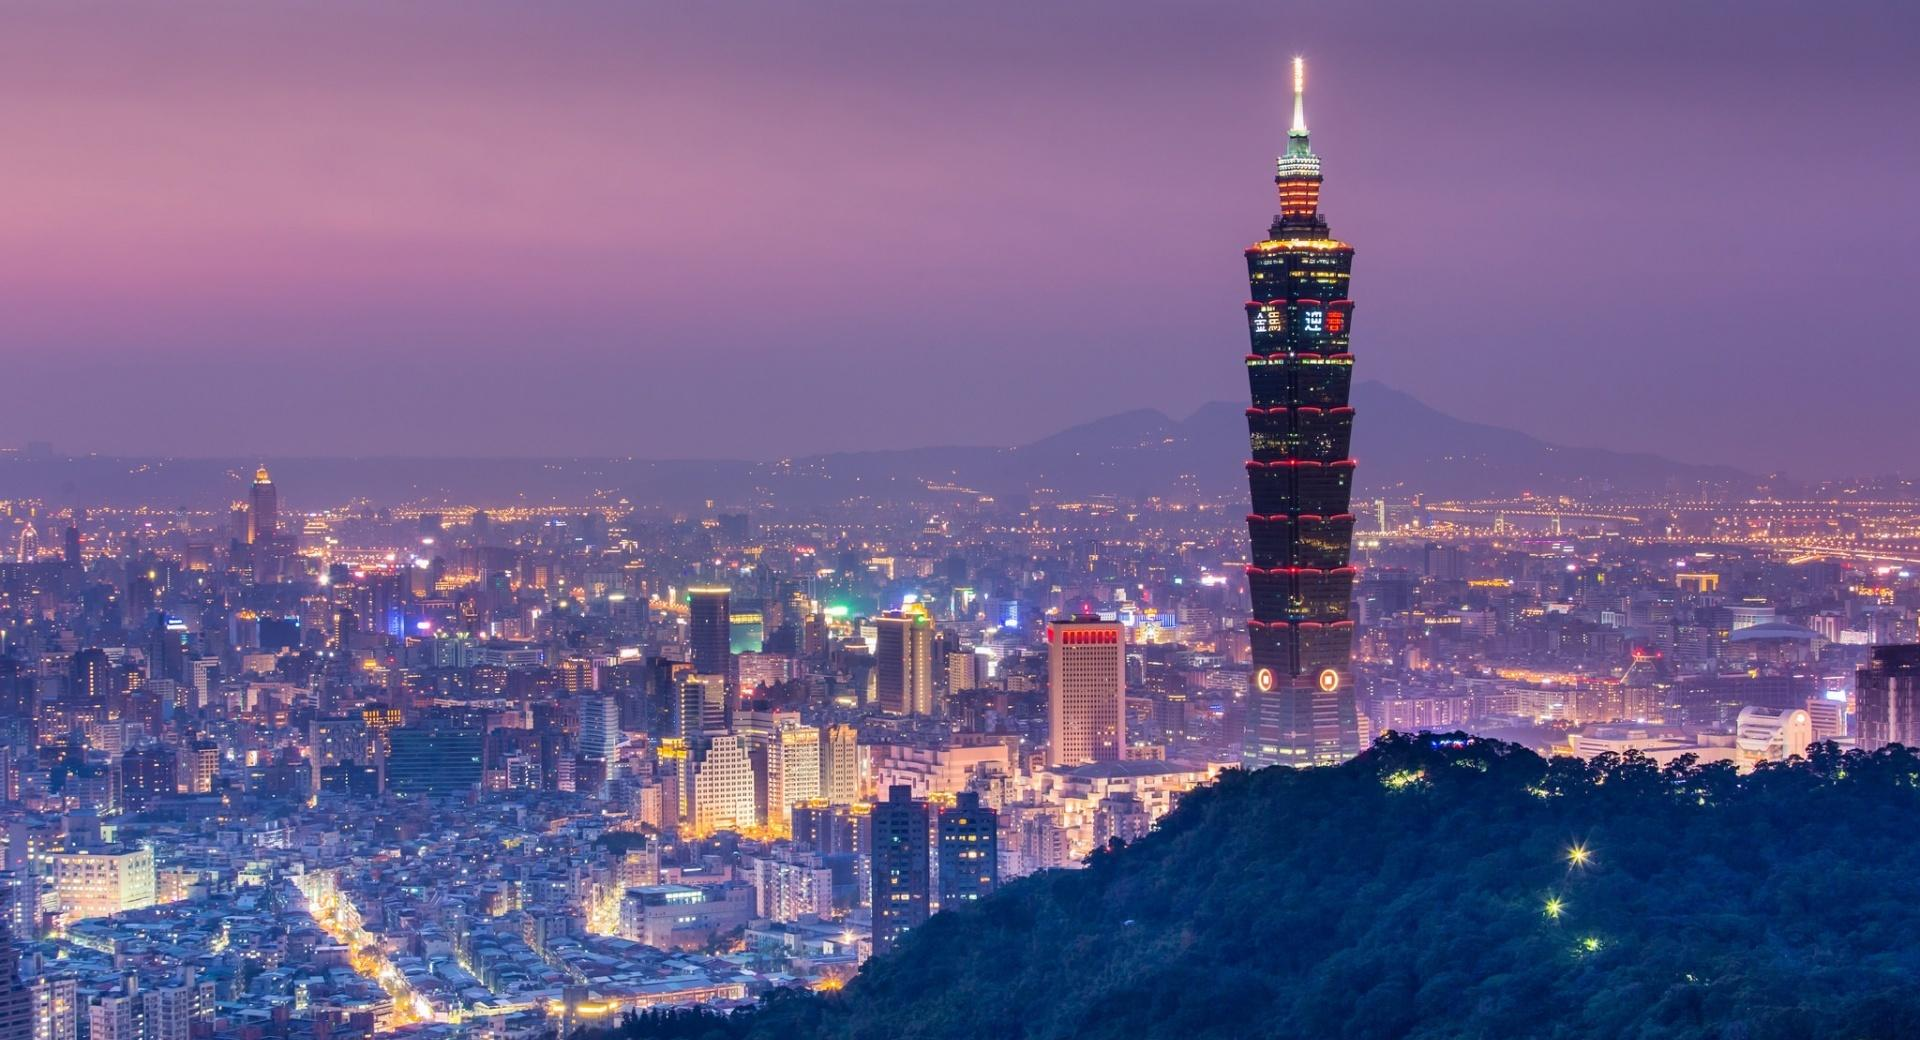 Taipei 101 At Night Panoramic View wallpapers HD quality